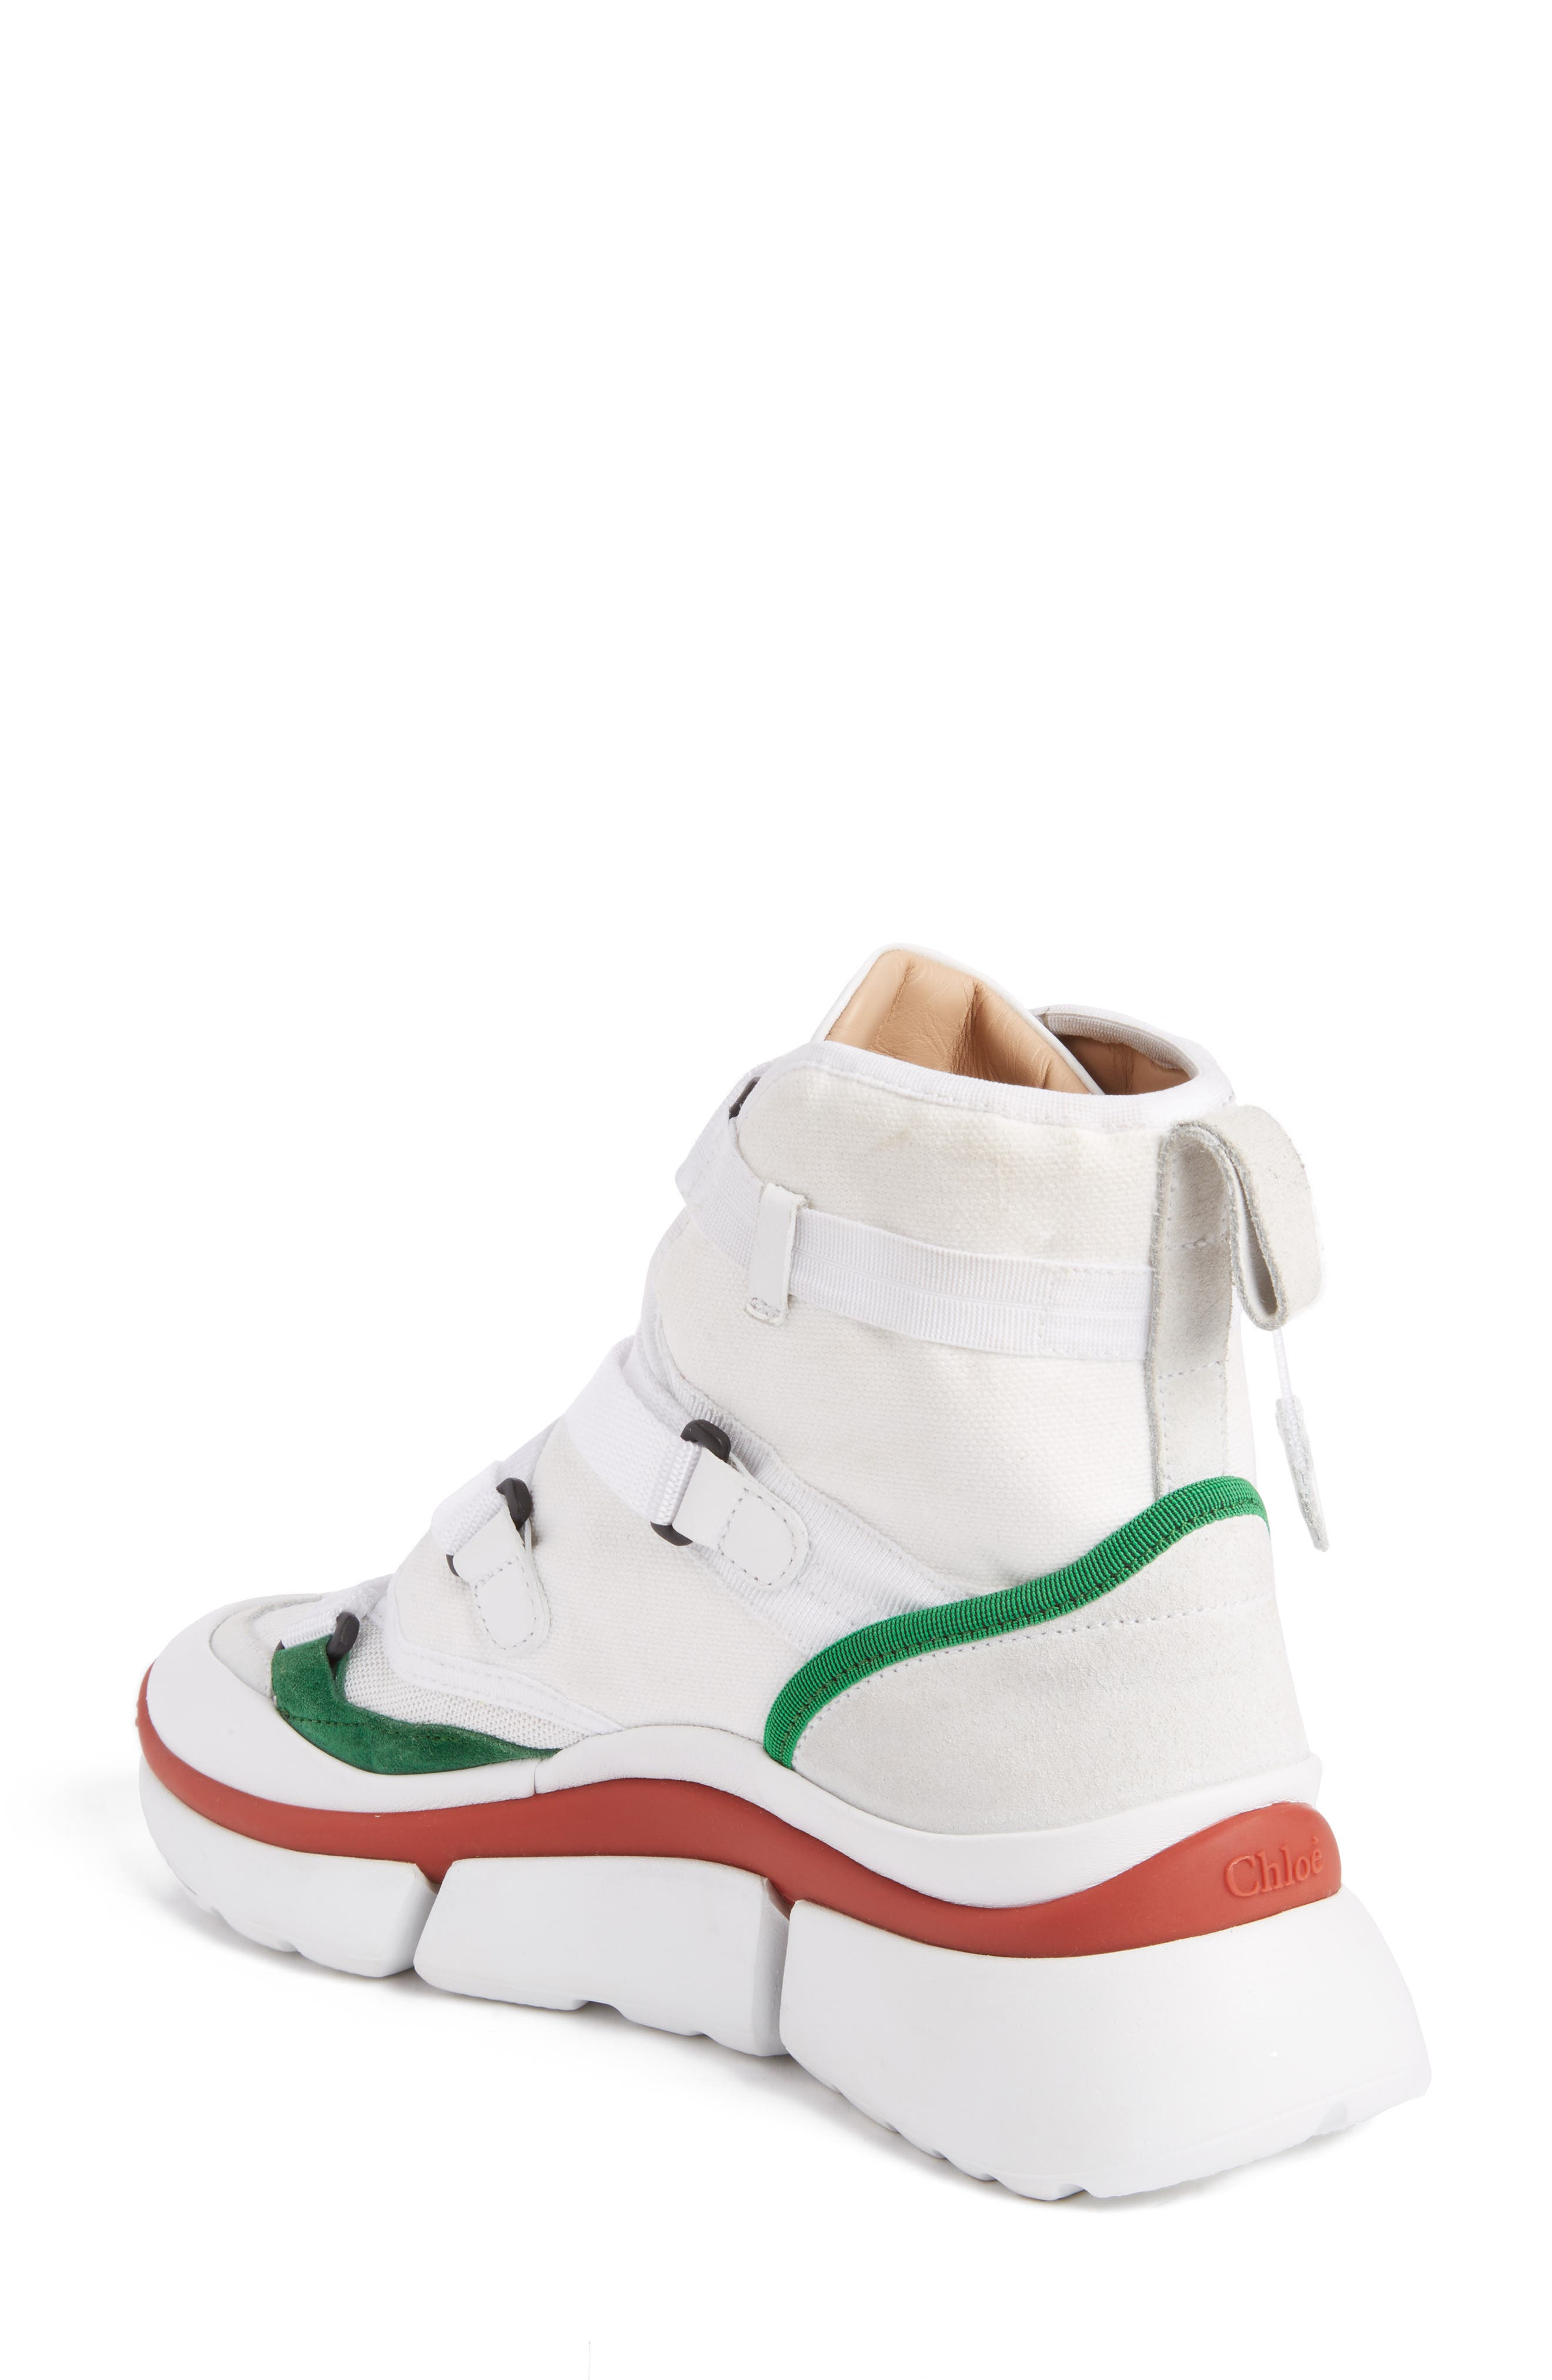 Sonnie High Top Sneaker,                             Alternate thumbnail 2, color,                             White/ Green/ Red